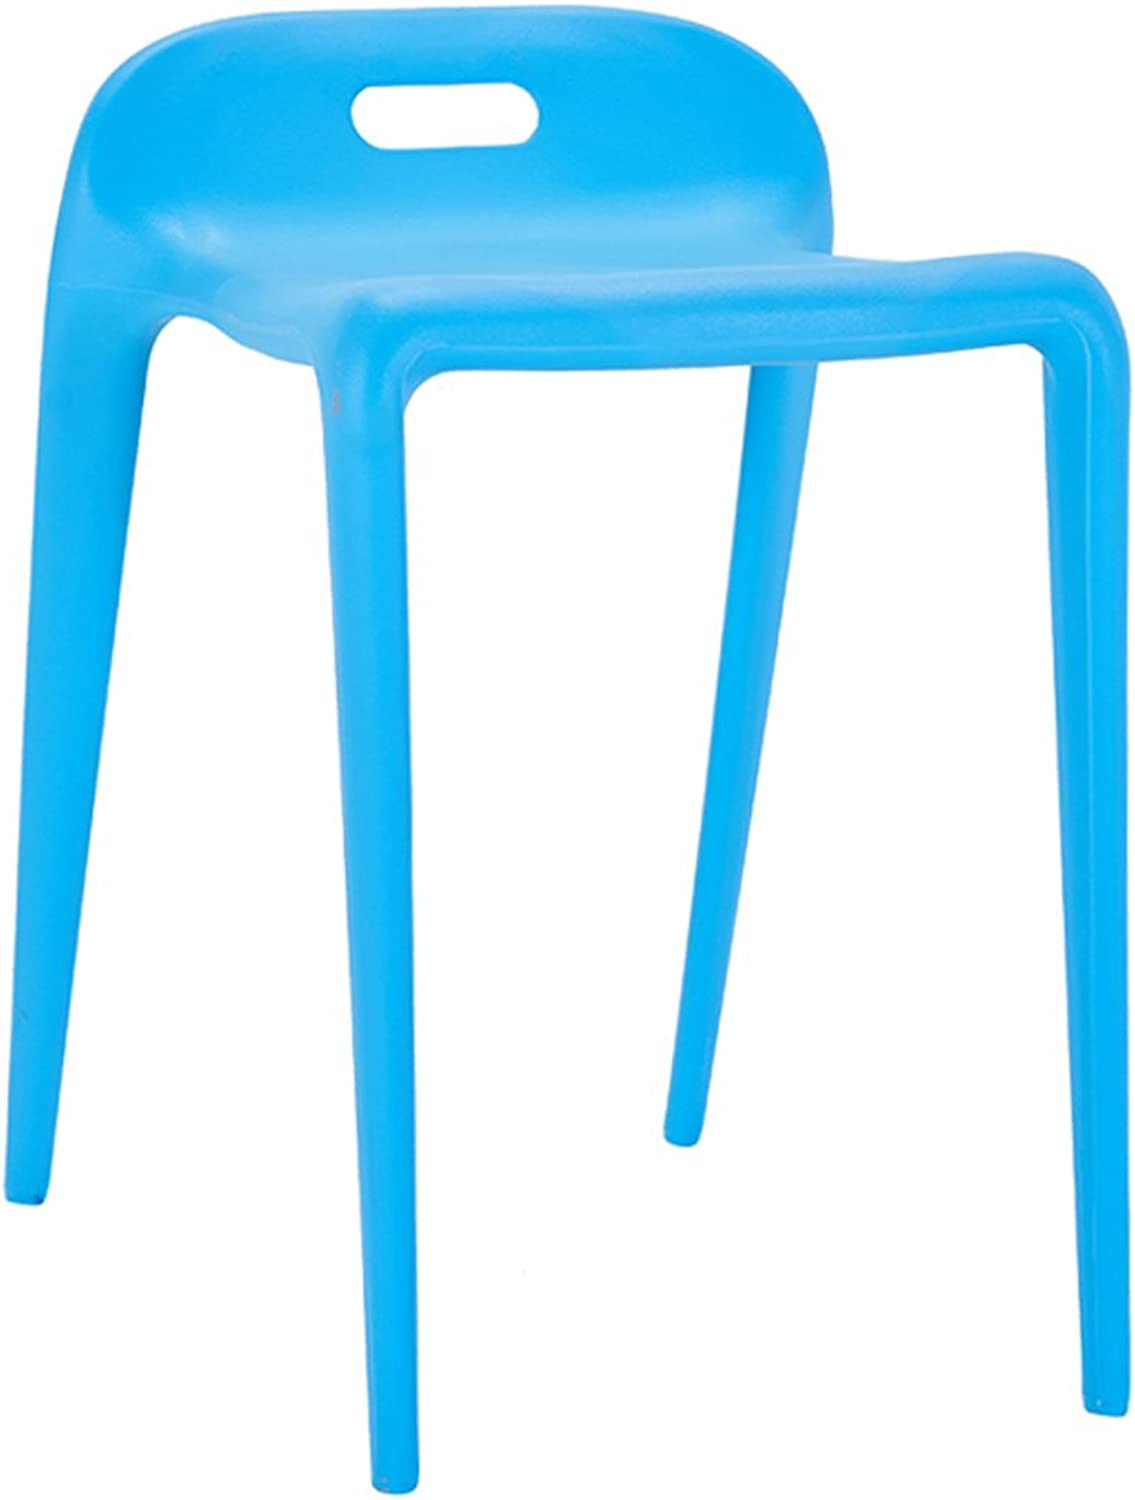 HZB Modern Fashionable Plastic Chairs, Family Dining Room Stools, Simple Restaurants Waiting for Rest Chairs.